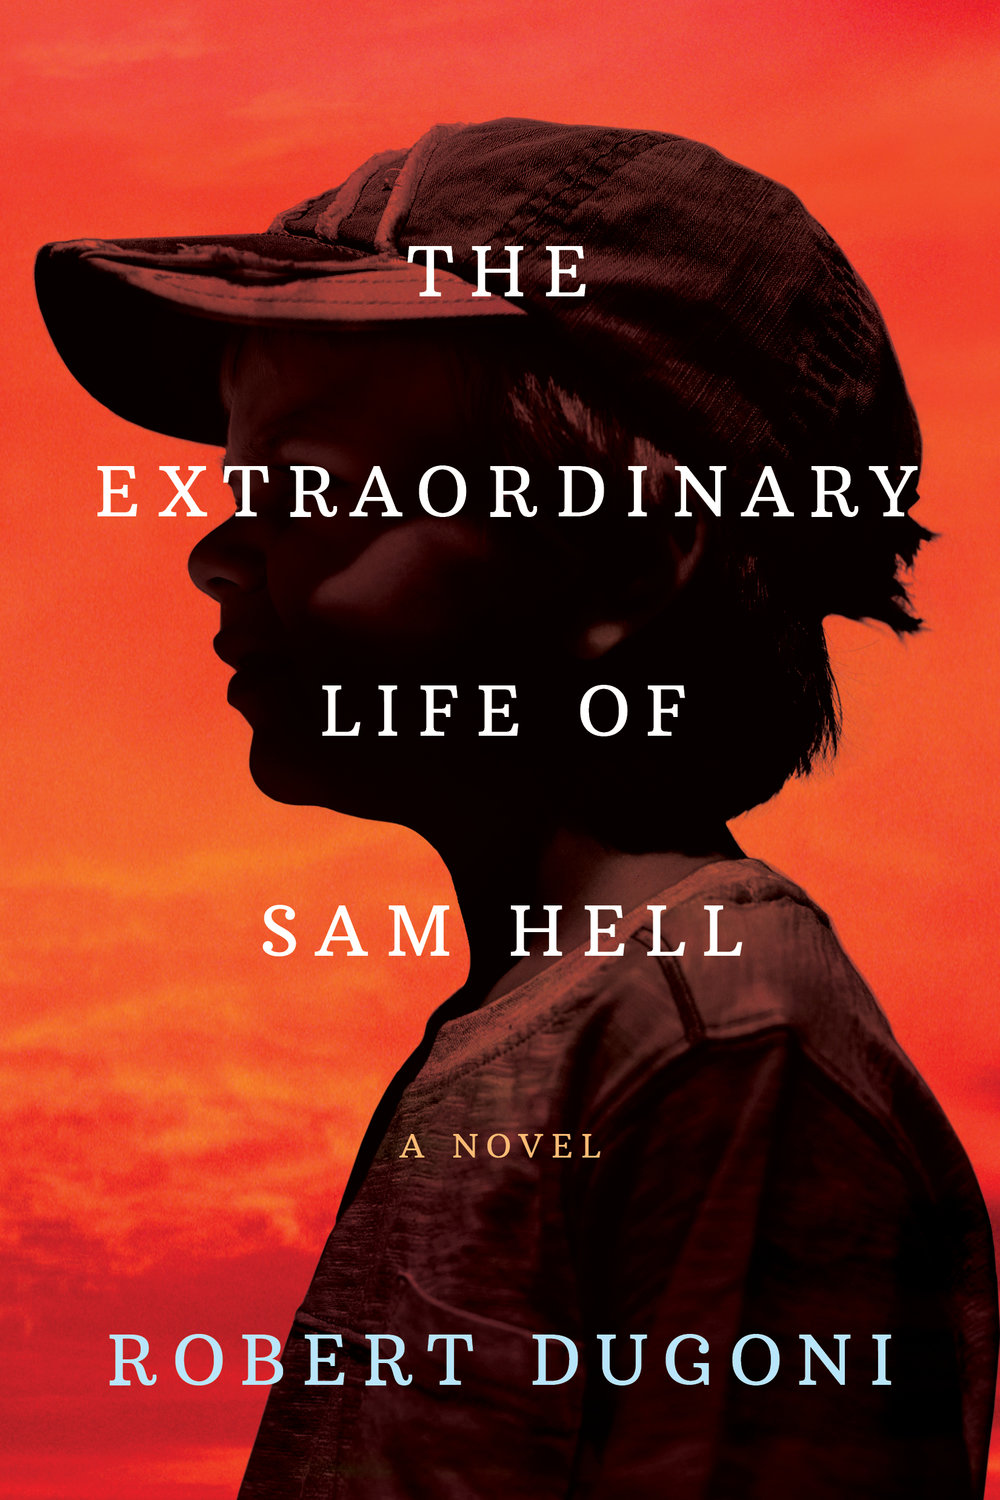 The Extraordinary Life of Sam Hell_300dpi(2).jpg